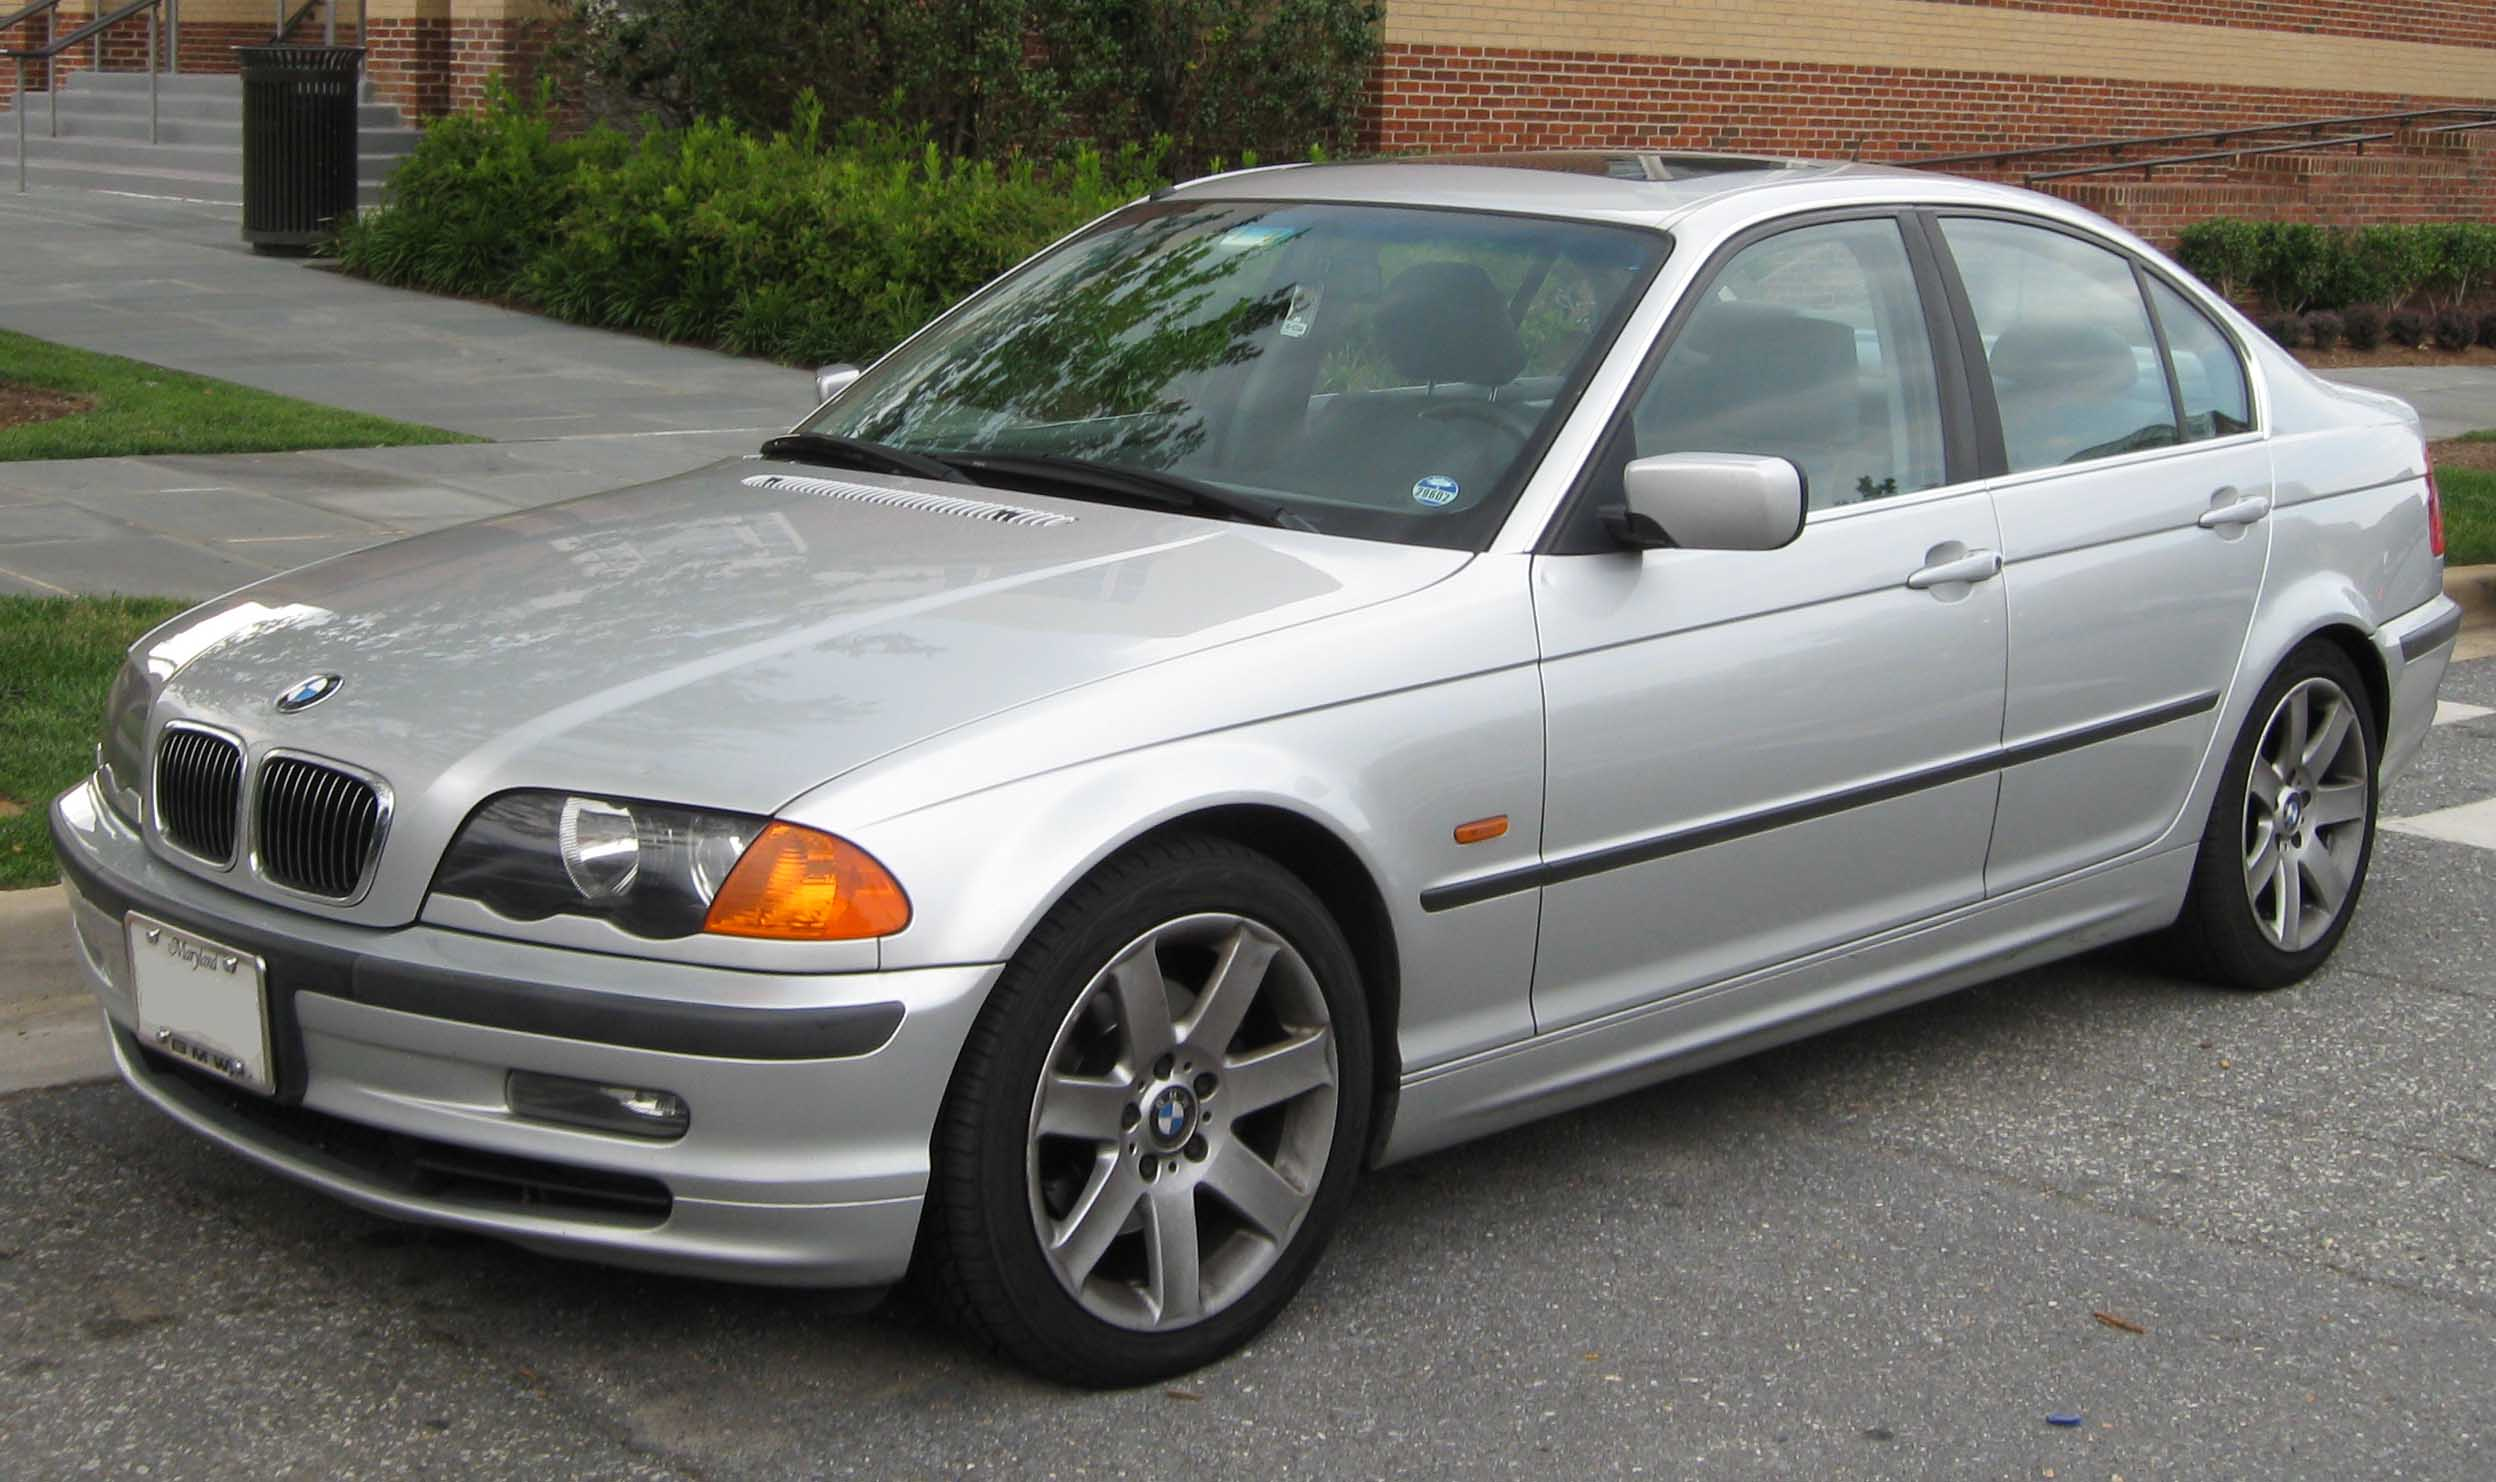 Archivo 1998 2001 Bmw 328i Sedan Jpg Wikipedia La